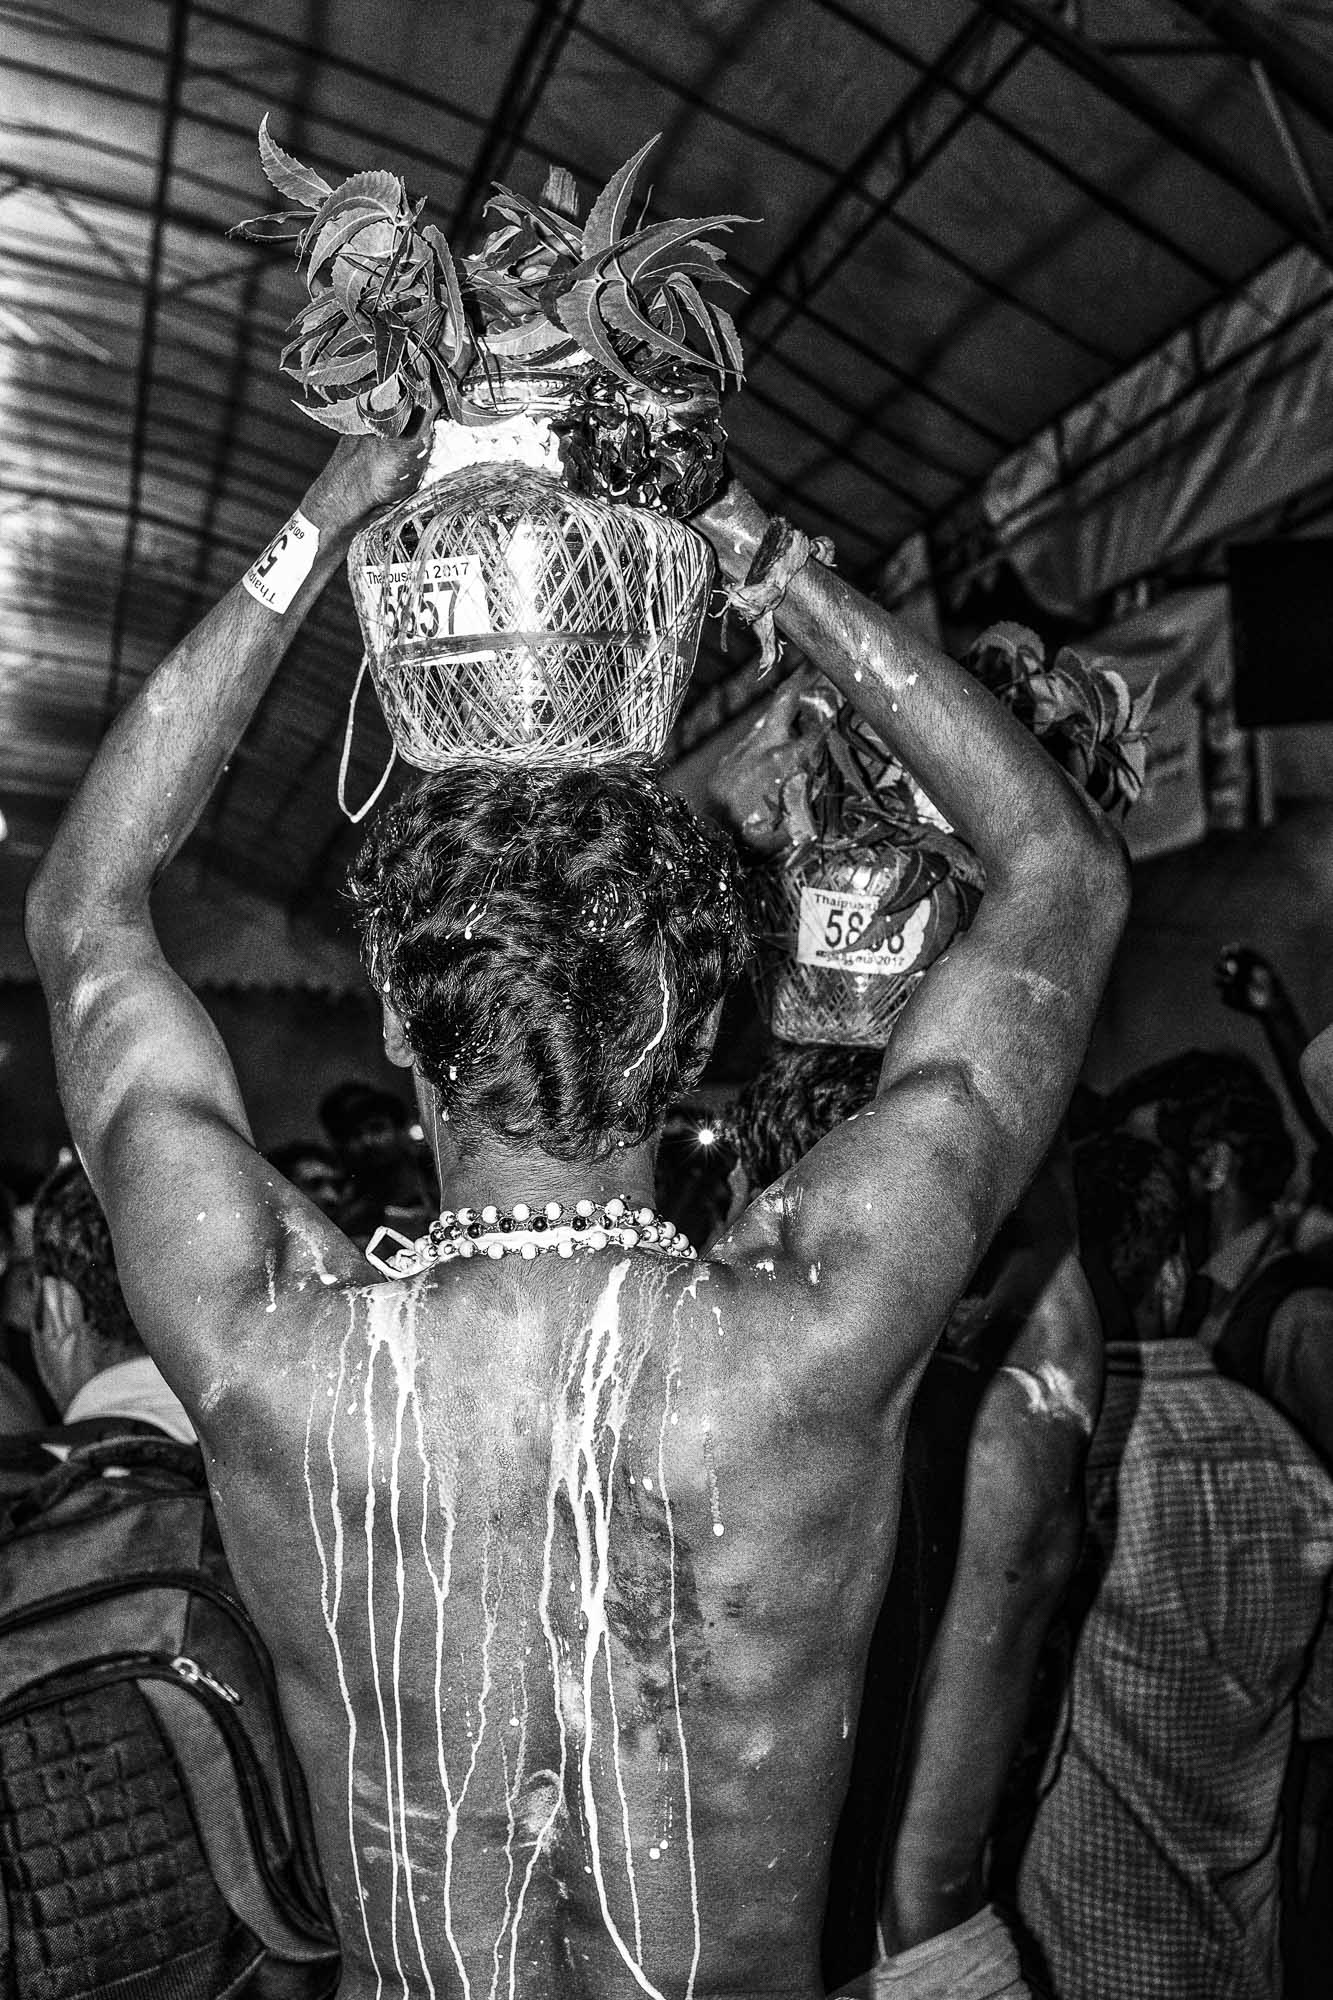 milk pot head walking Little India Thaipusam Festival hindu Singapore photography jose jeuland documentary event